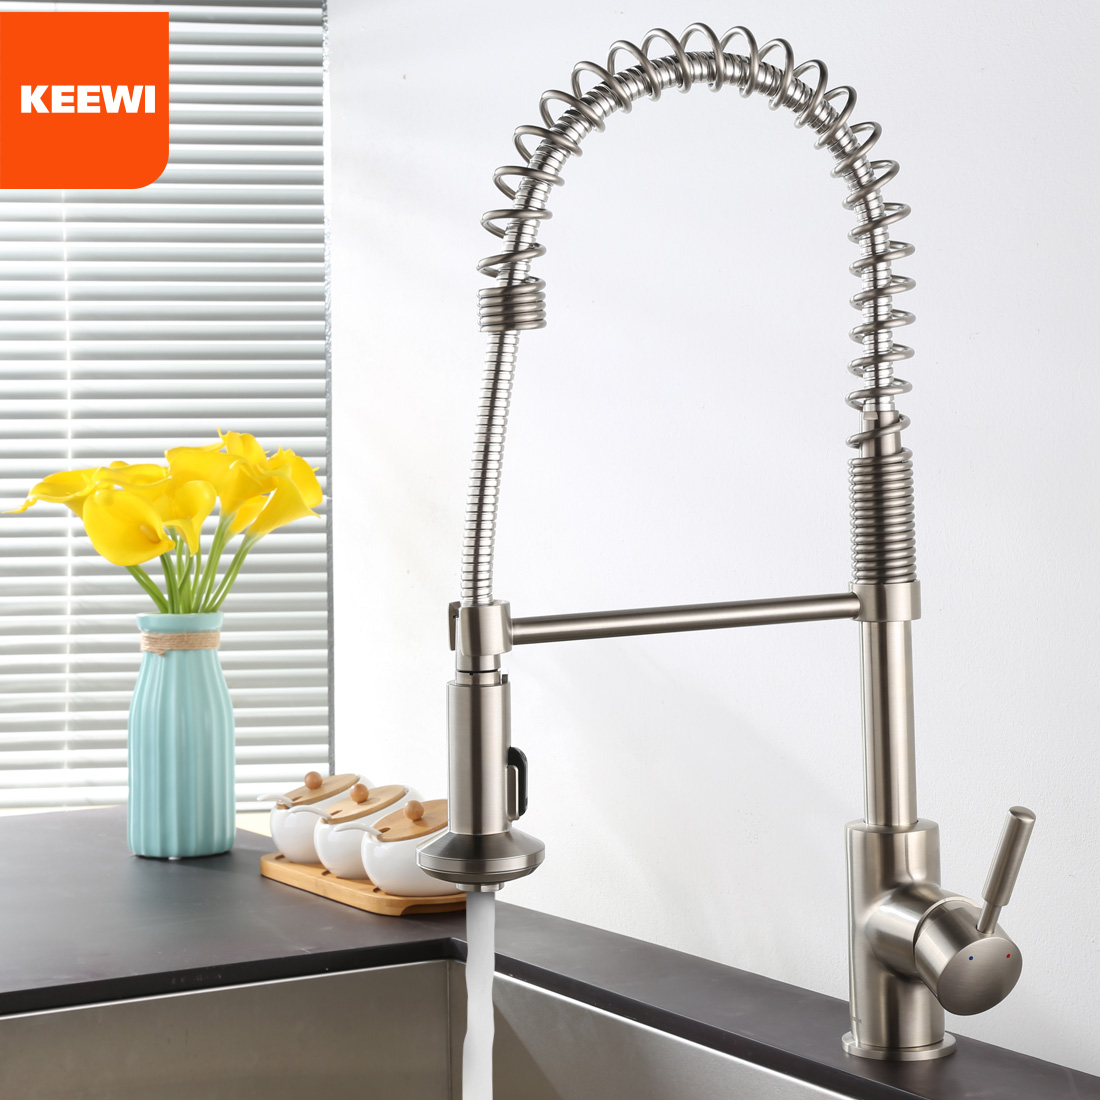 Keewi Kitchen Faucet Brushed Nickel, Commercial Kitchen Faucet Pull ...